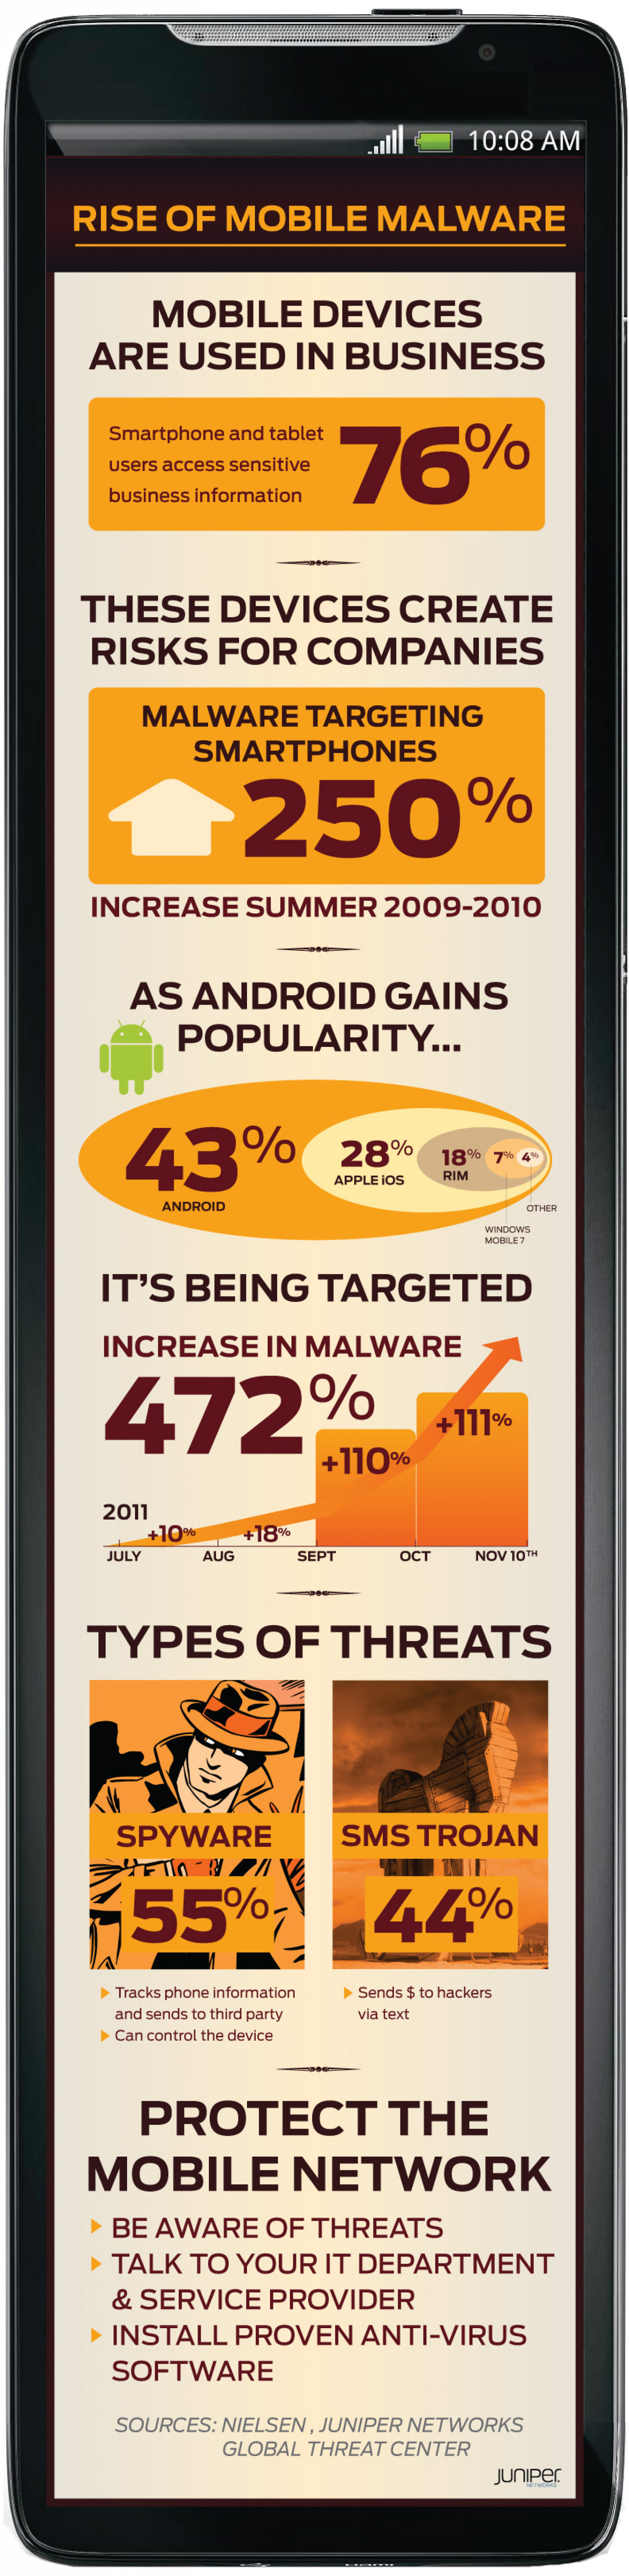 Rise of Mobile Malware Infographic